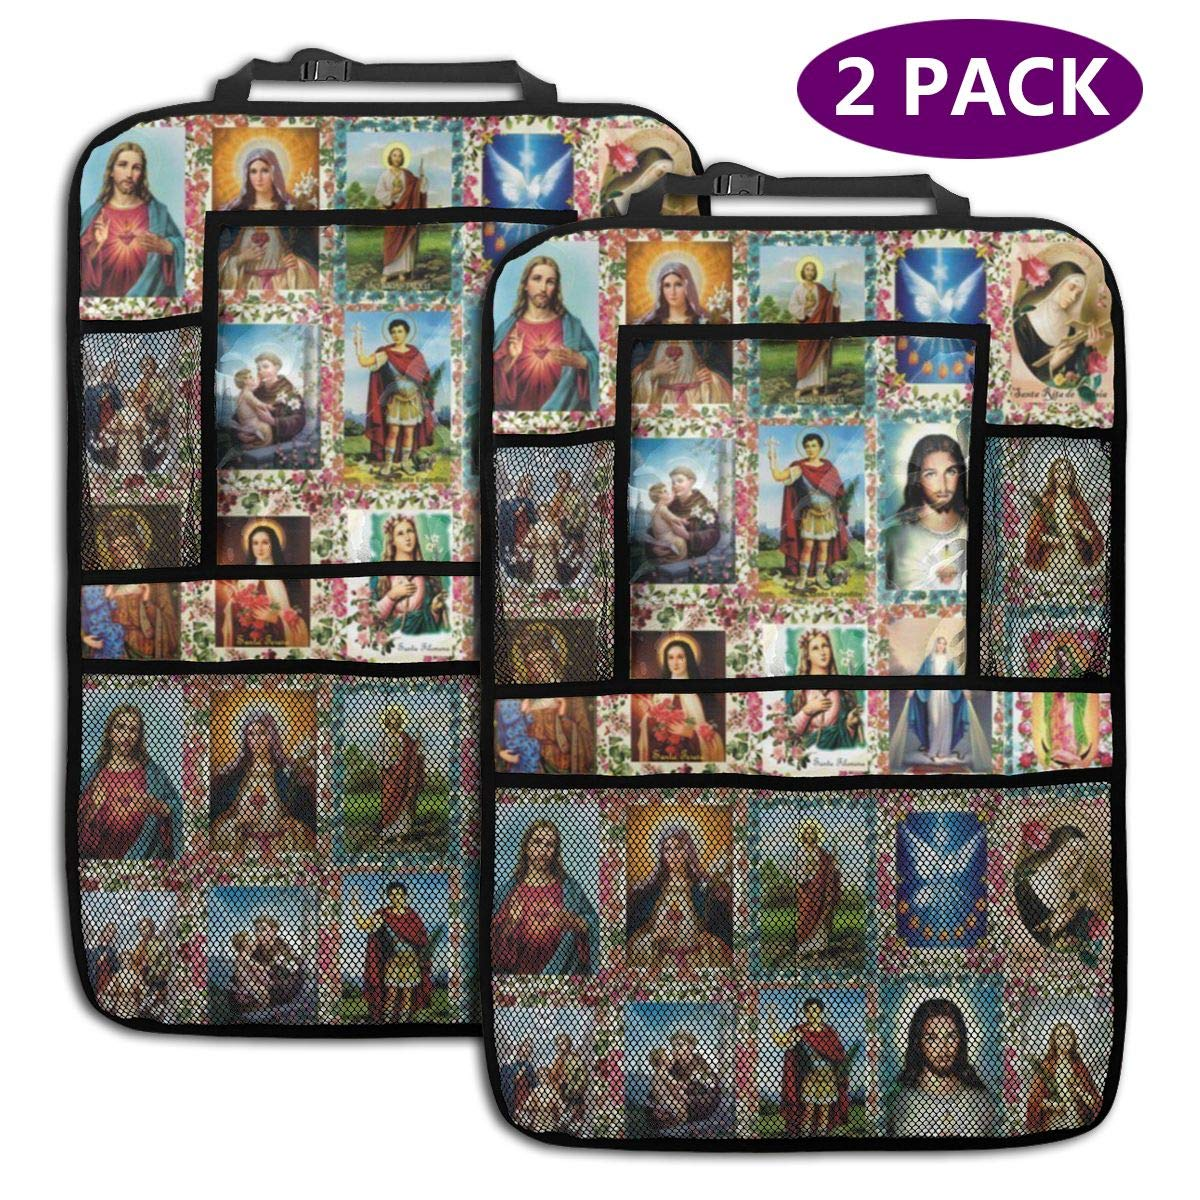 QF6FEICHAN Catholic Saints Images Collage Outh Car Seat Back Protectors with Storage Pockets Kick Mats Accessories for Kids and Toddlers by QF6FEICHAN